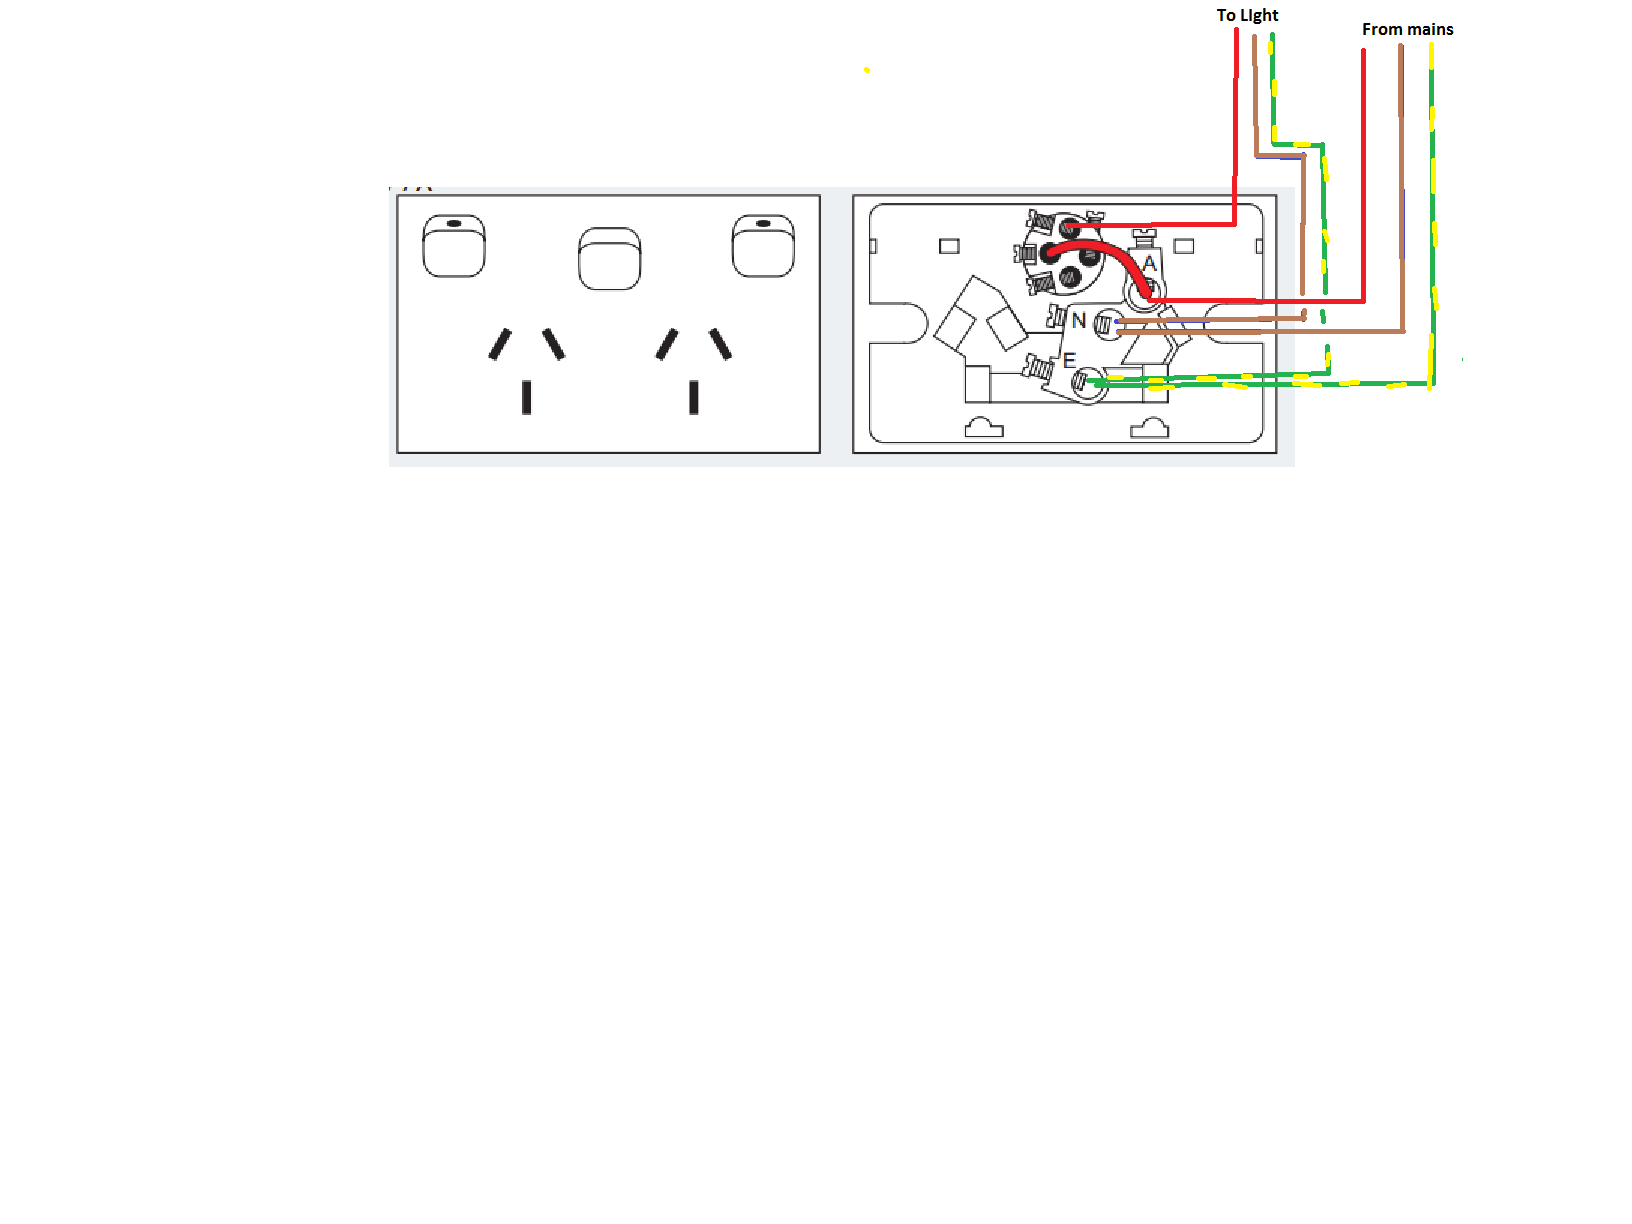 749b5548 aa68 4be1 af03 f9c66f722f95 uk double power point and switch png